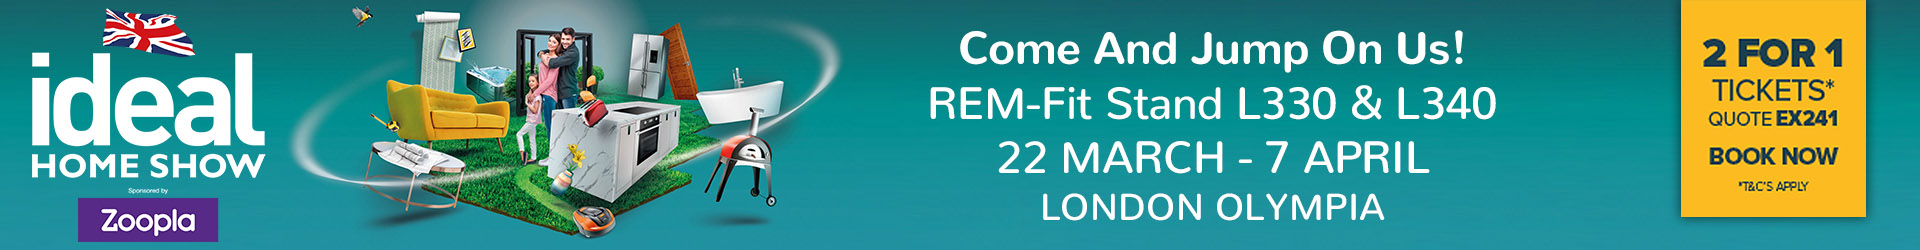 REM-Fit at the Ideal Home Show